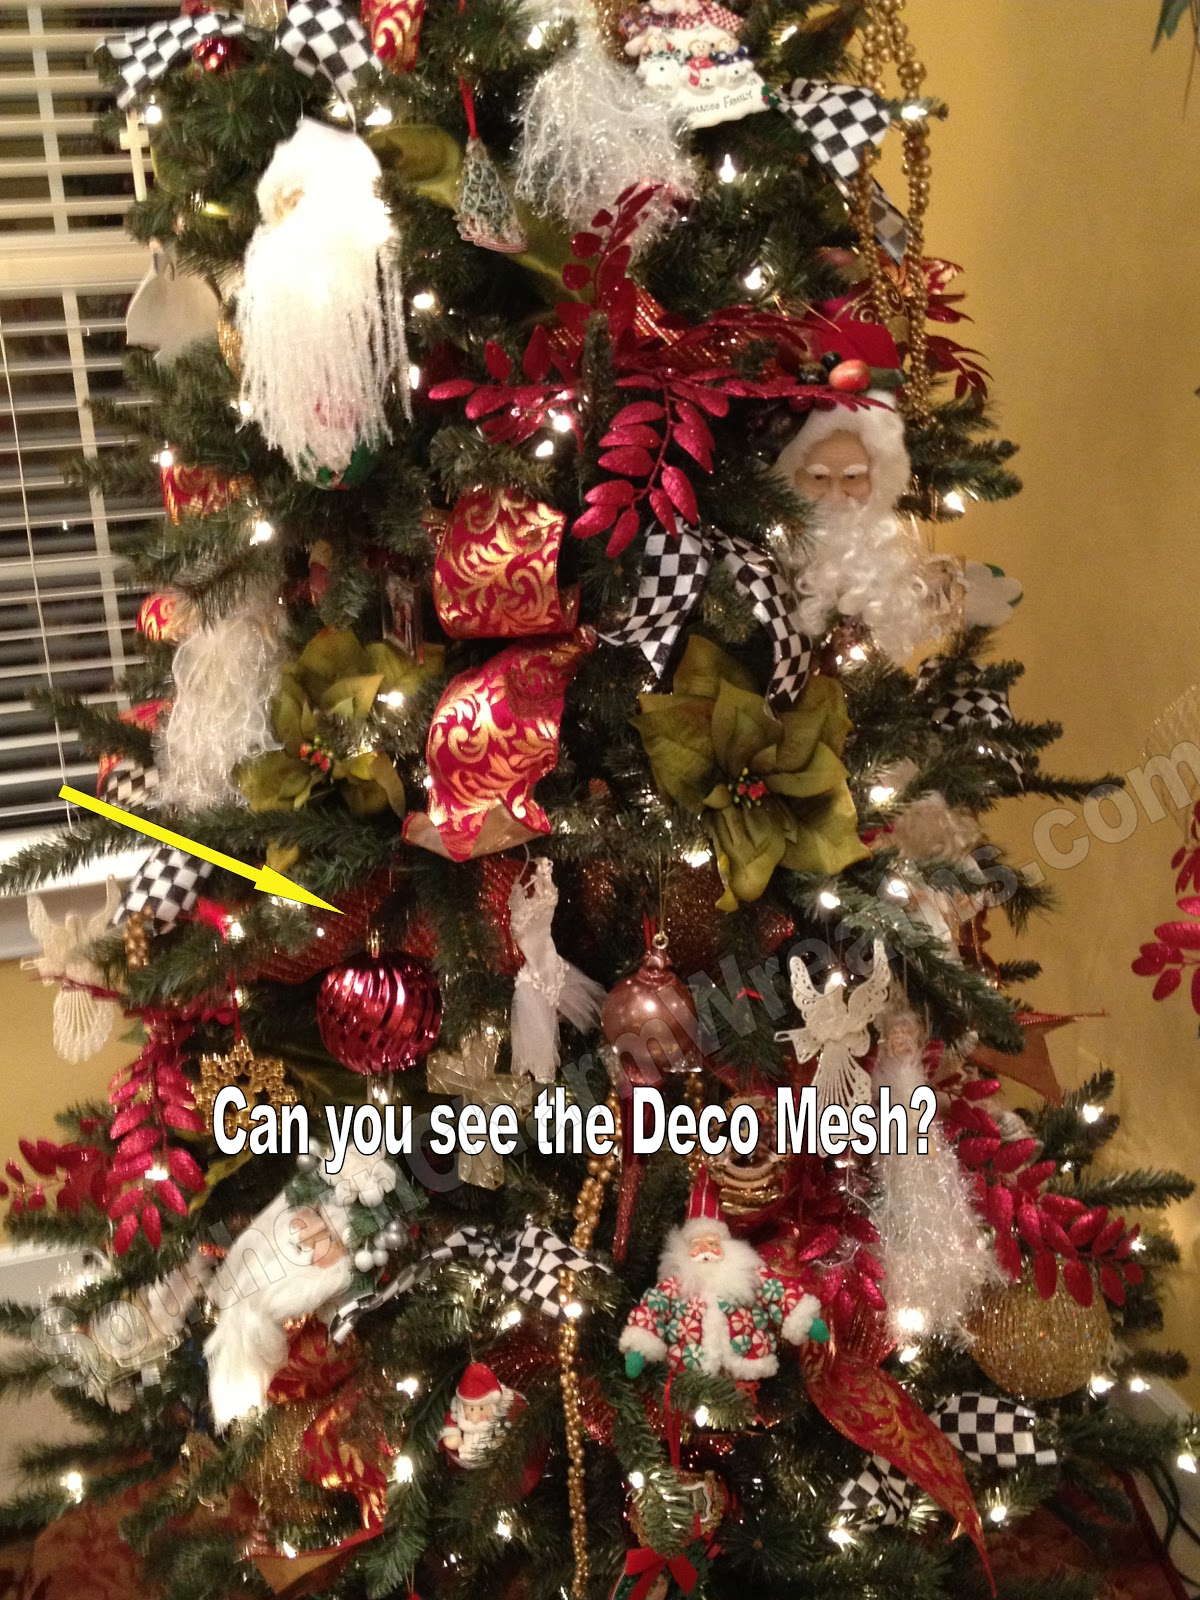 5 Ways to Add Deco Mesh to a Christmas Tree | Southern Charm Wreaths